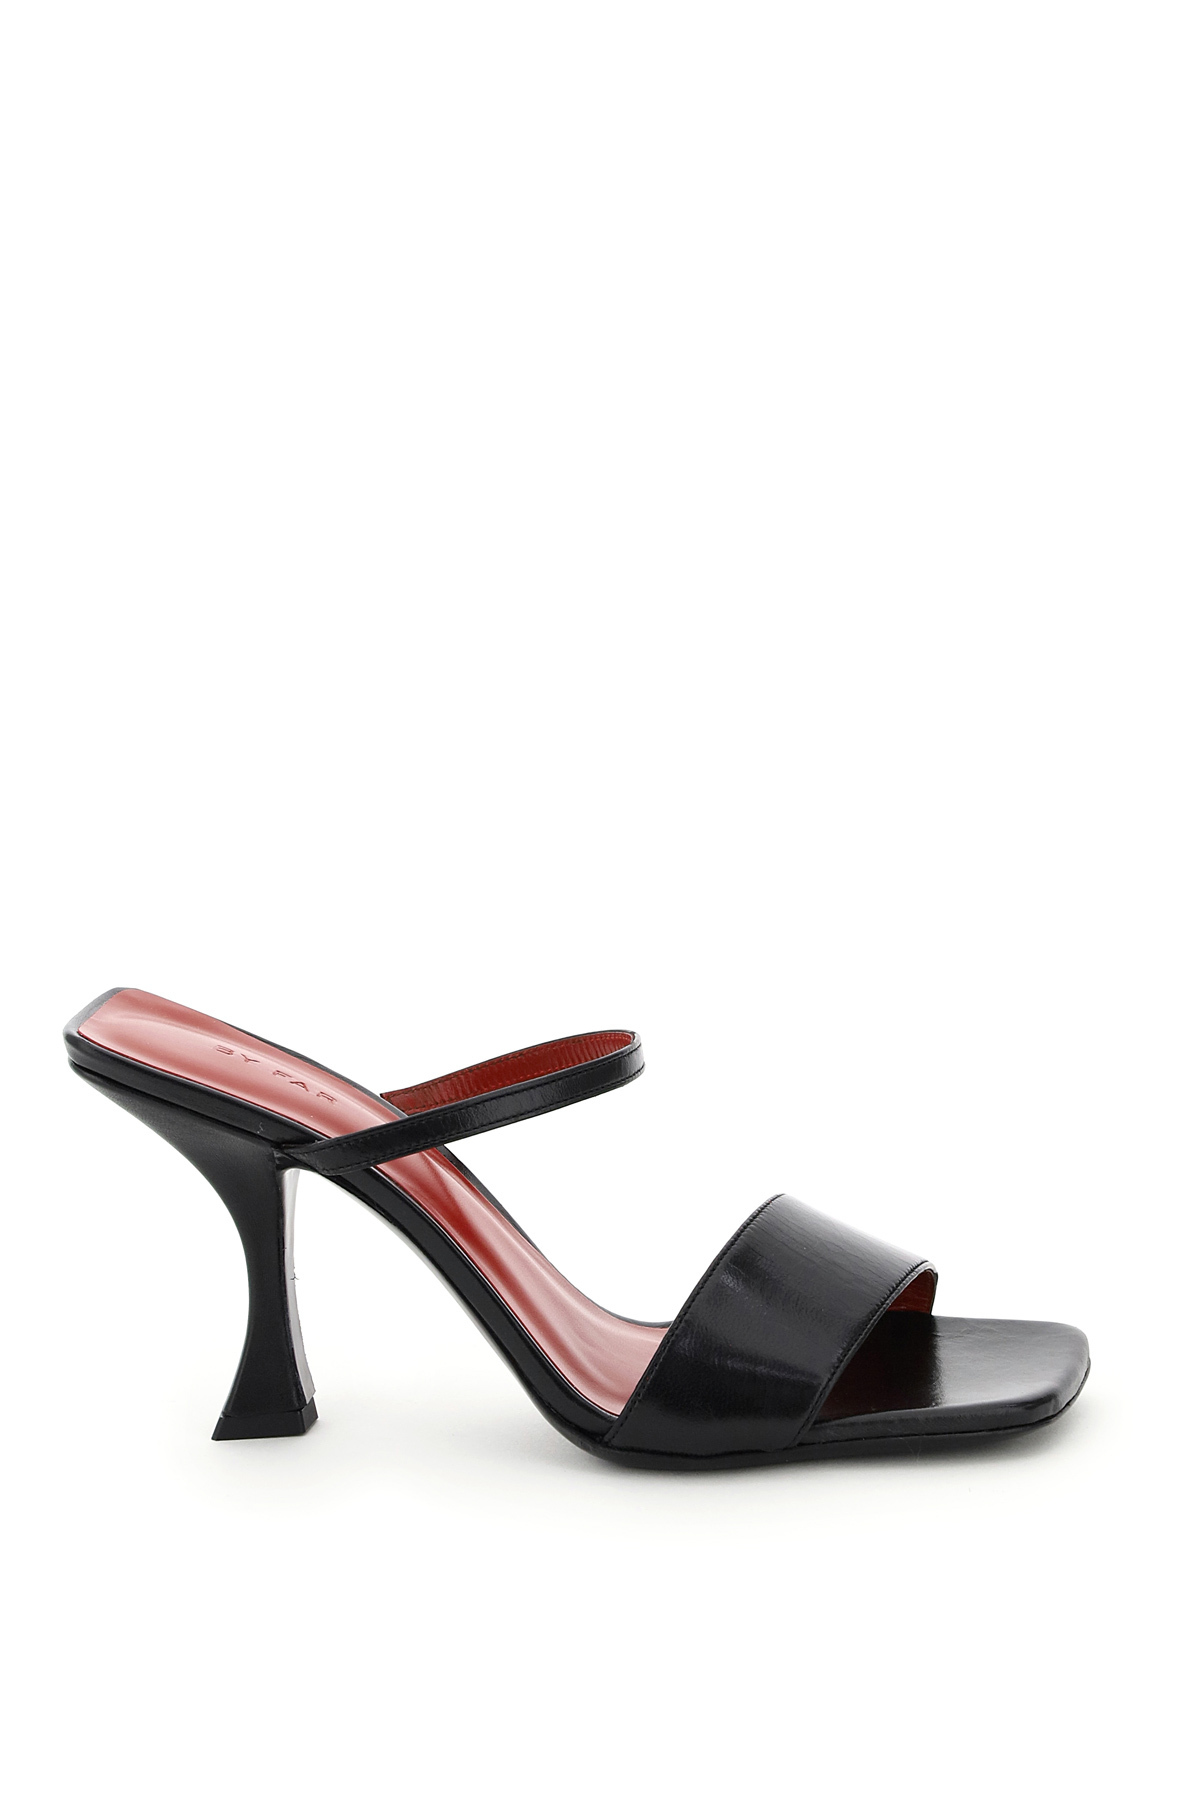 BY FAR NAYLA SANDALS 38 Black Leather